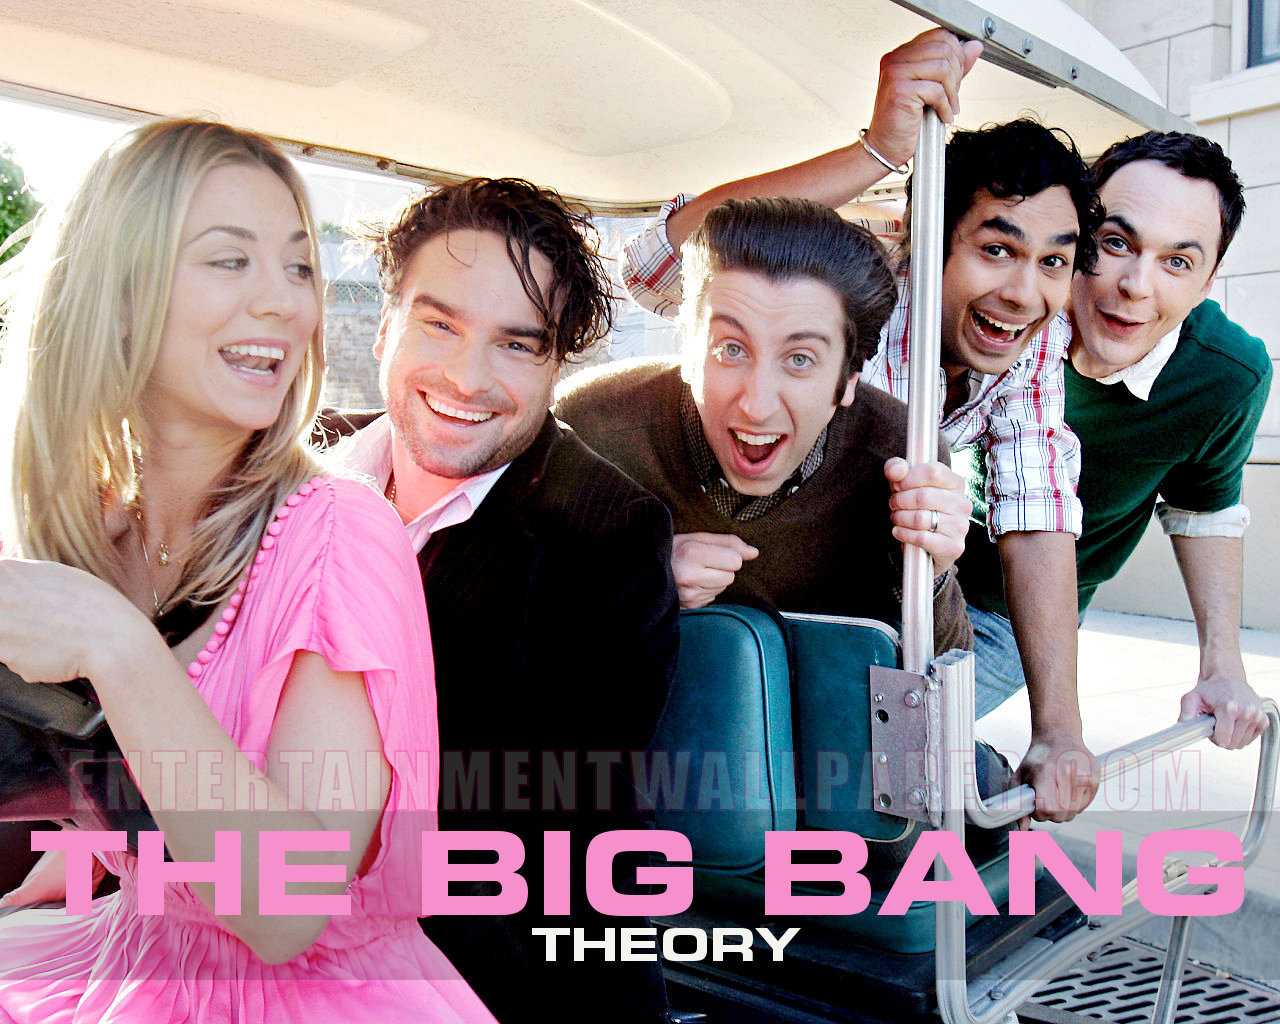 http://1.bp.blogspot.com/_E26Ndy_oKVc/TVBMQQs9nmI/AAAAAAAABOM/Qw2O5S5yNJs/s1600/TBBT-wallpaper-the-big-bang-theory-15234802-1280-1024.jpg